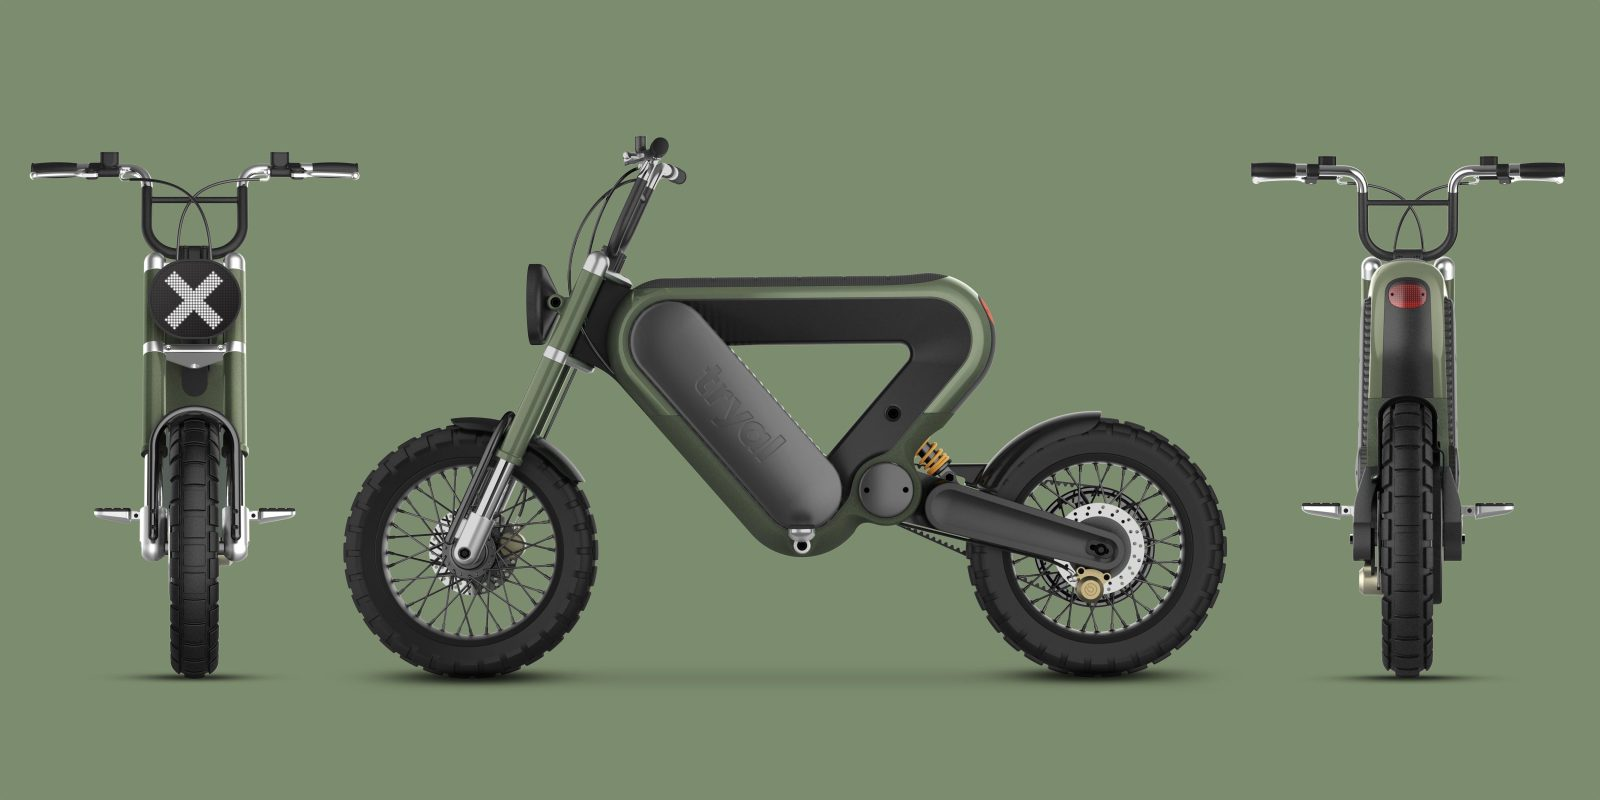 Check out this trippy 'future of motorcycling' electric motorcycle design